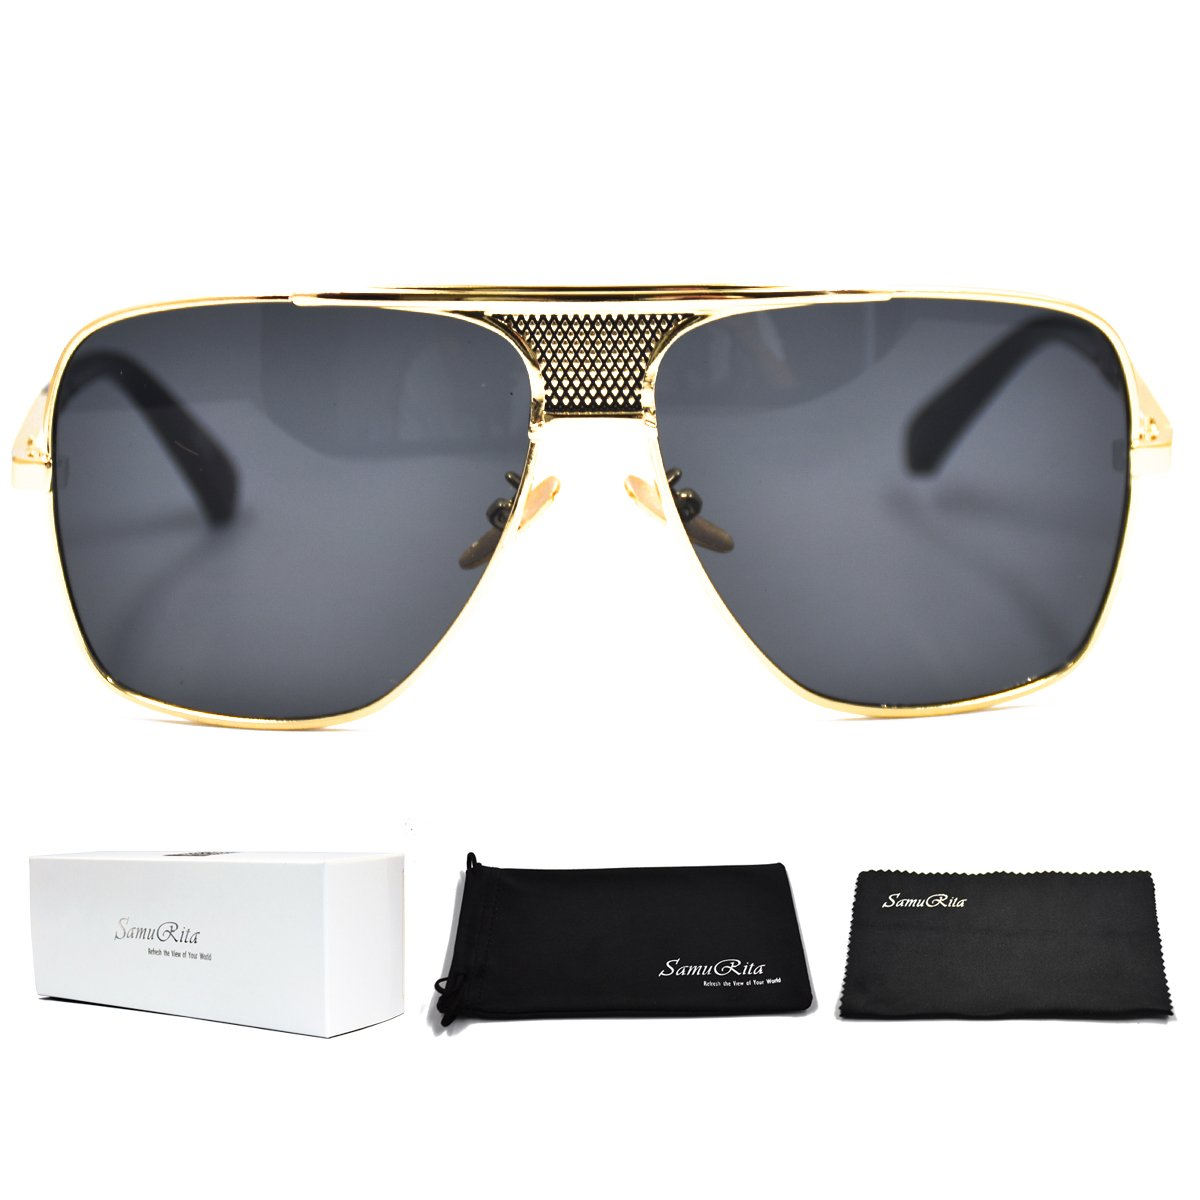 SamuRita Metal Celebrity Flat Top Aviator Sunglasses Oversized Designer Shades(Black Lens/Gold Frame)